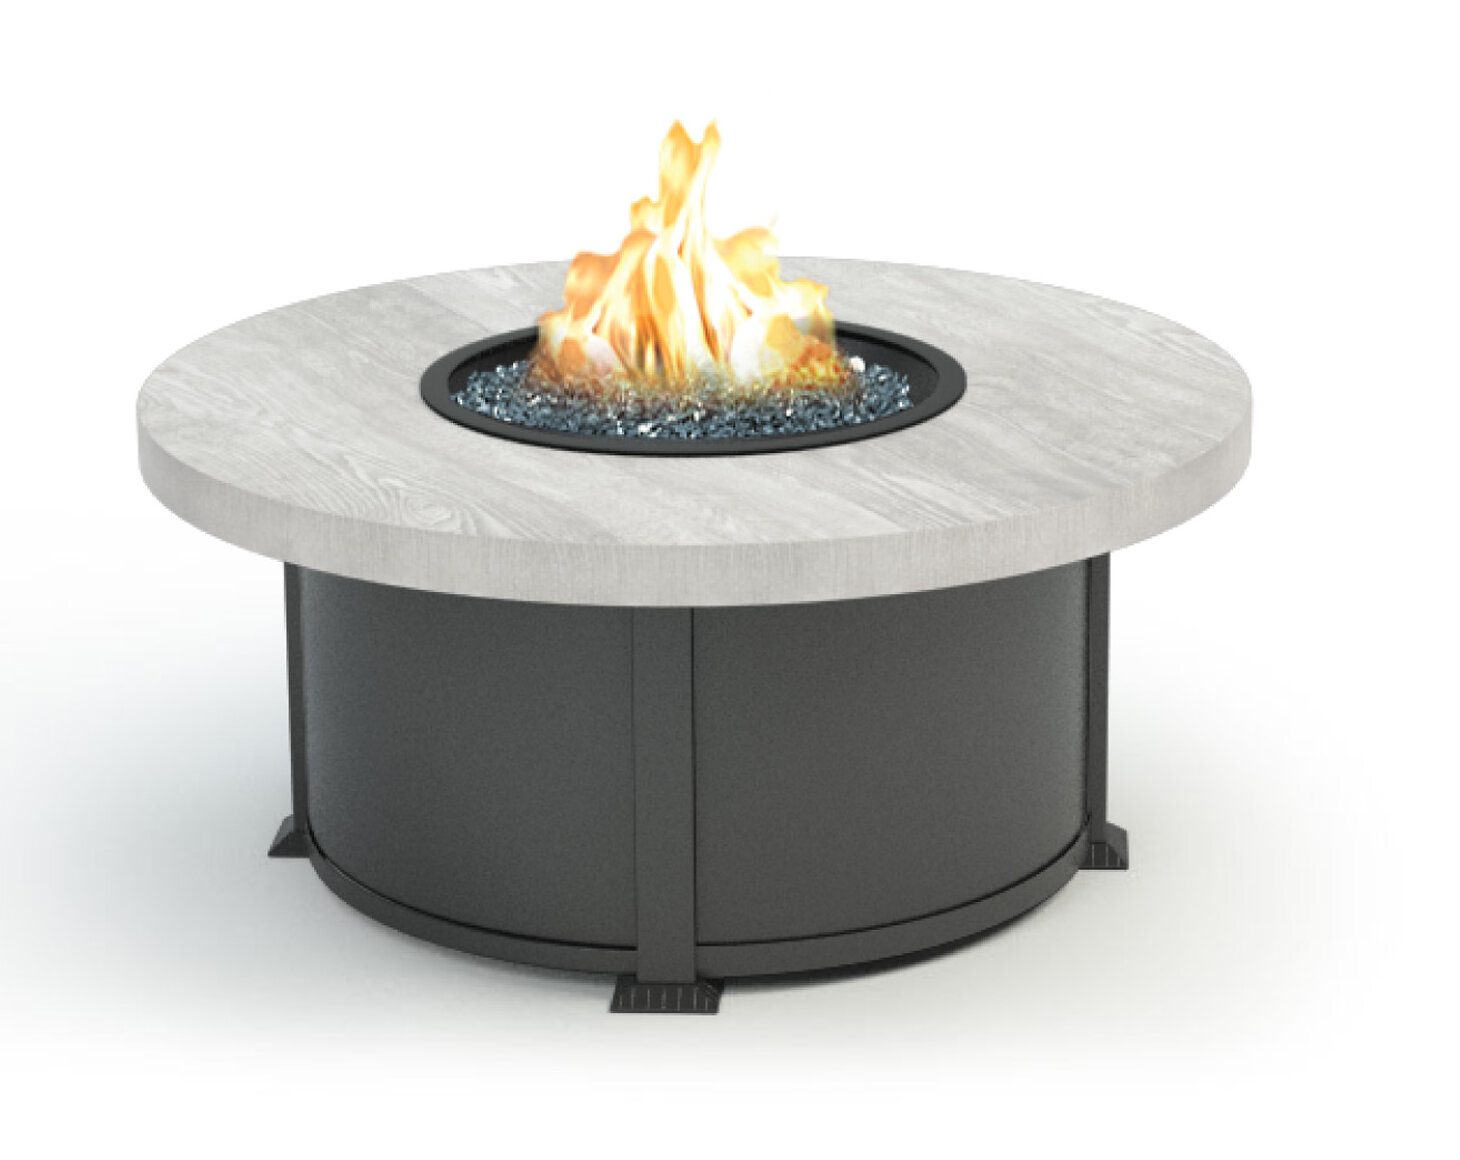 Fire Pit Tables Up To 40 Off Through 12 26 Wayfair